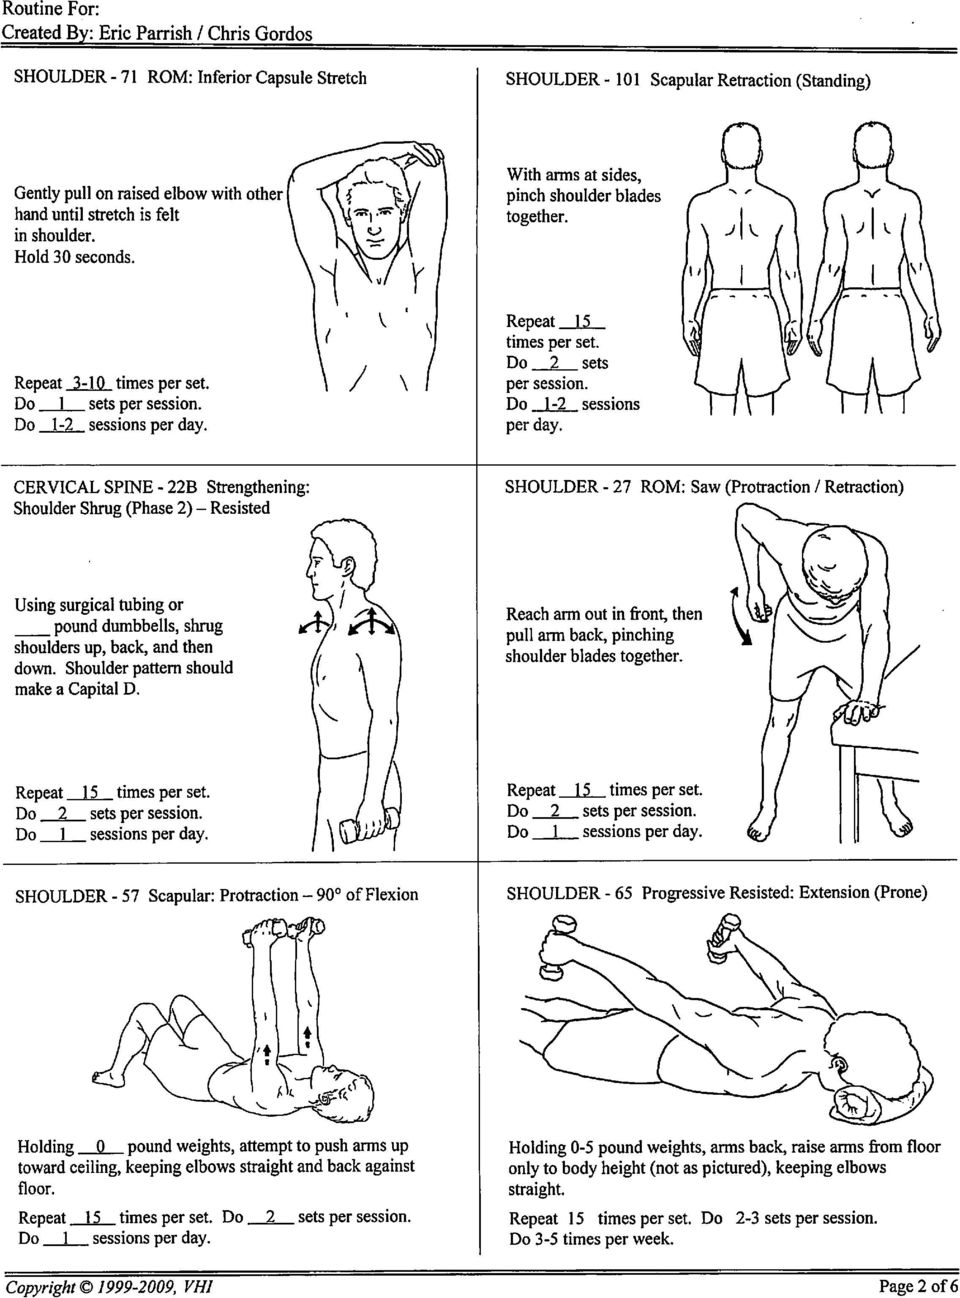 Shoulder Stretching and Strengthening - PDF